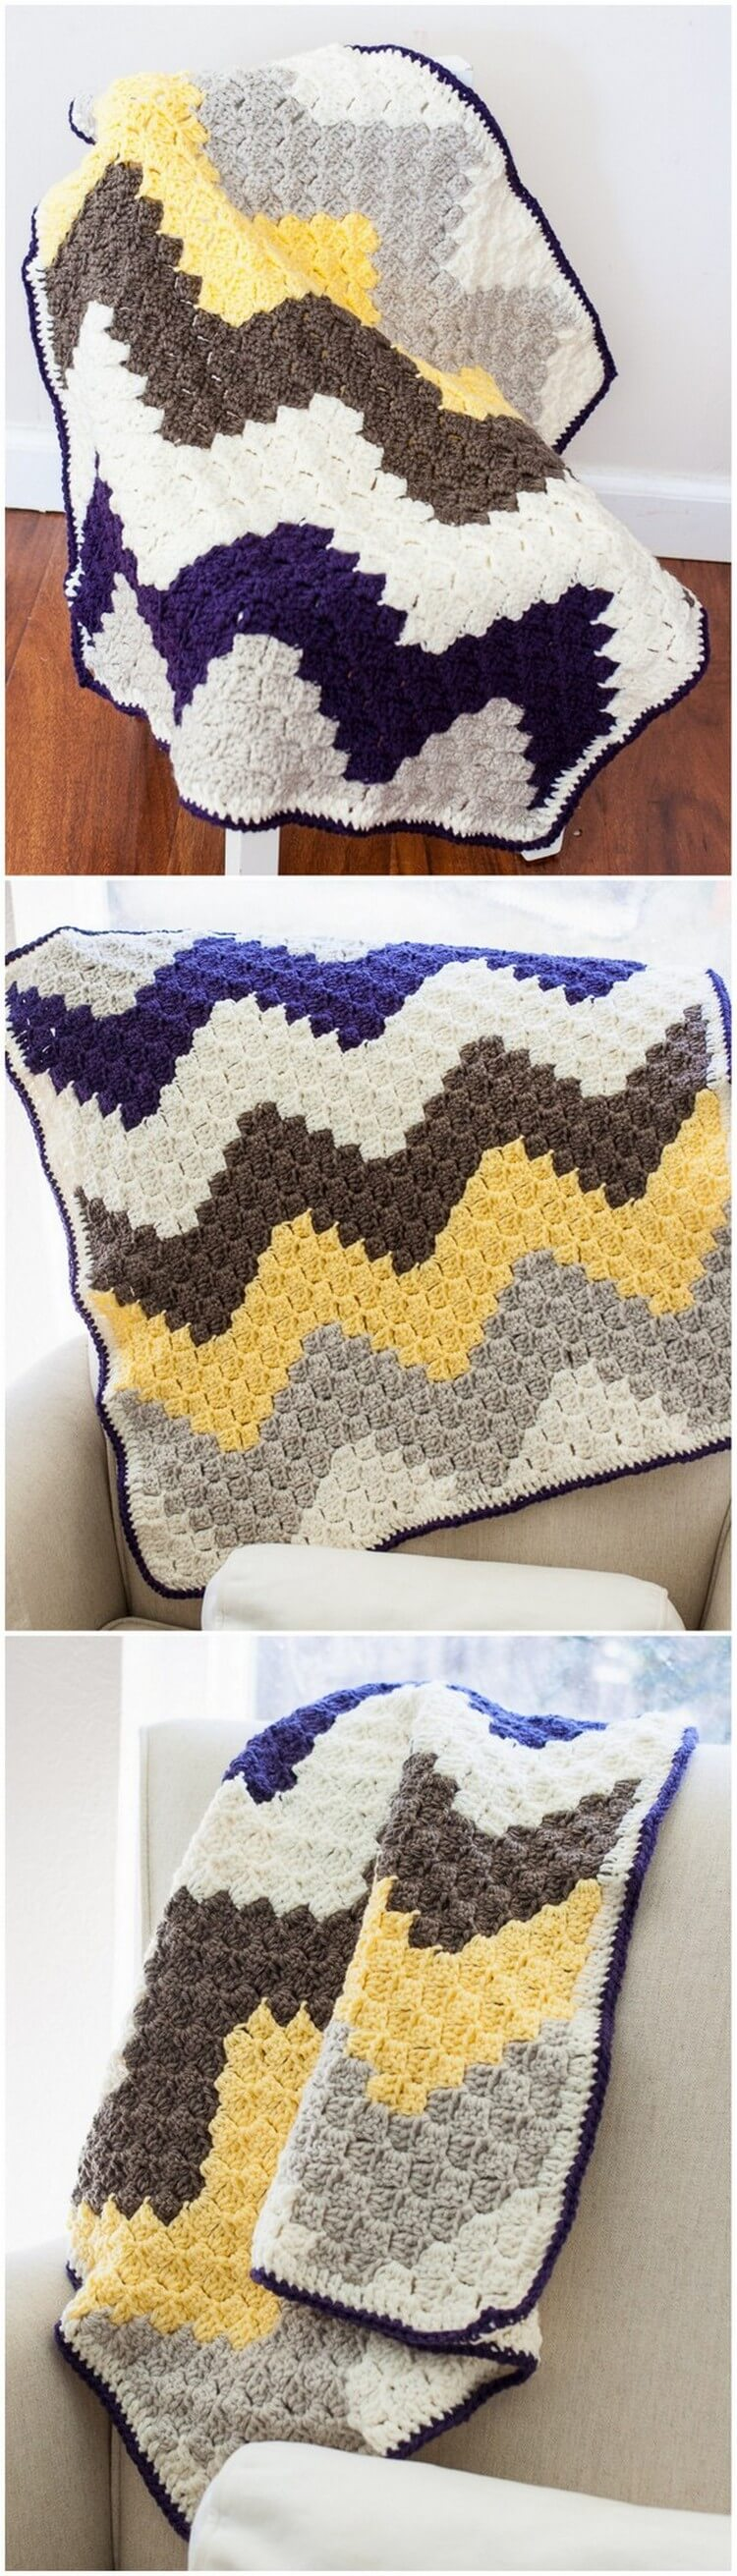 Crochet Blanket Pattern (35)